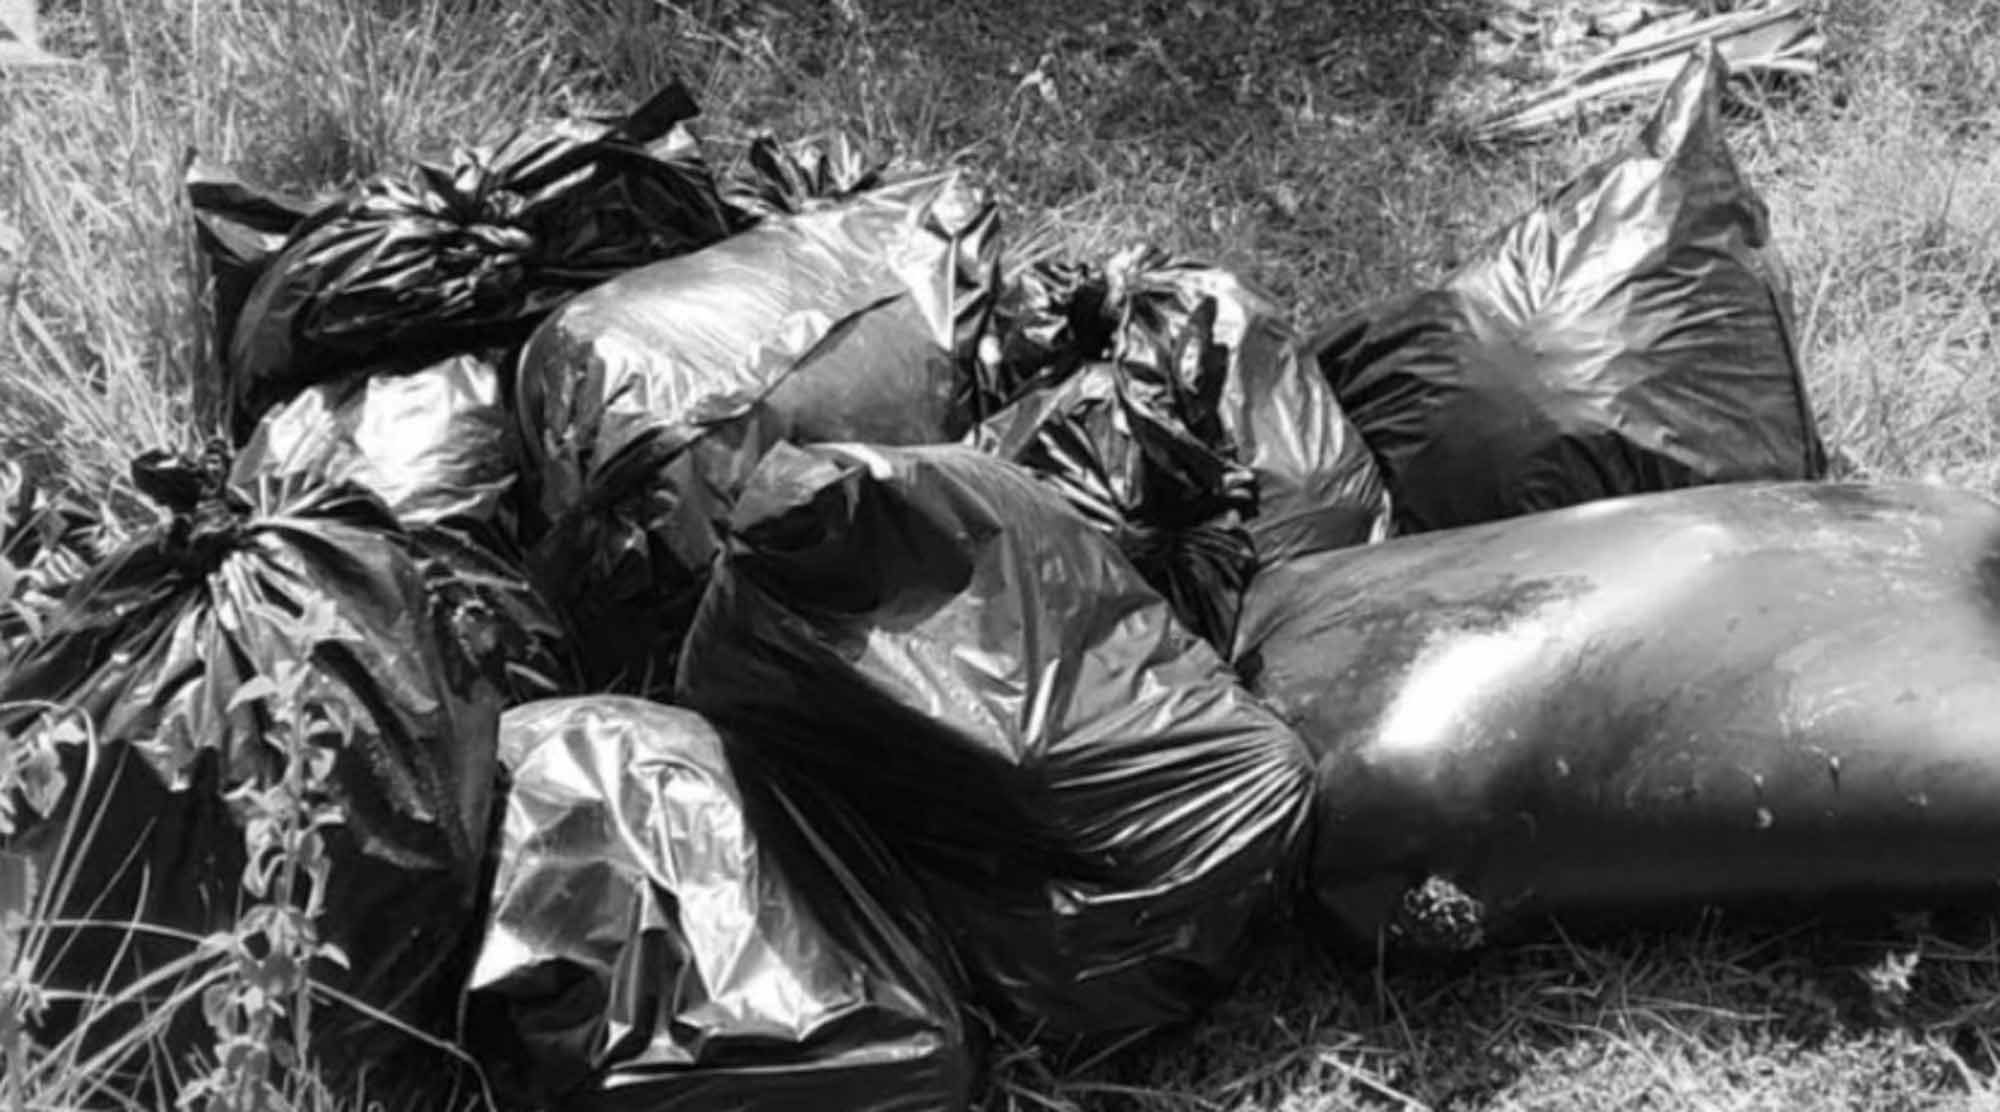 Cops Probed After 4 Men Cut Up Alive And Dumped In Bags